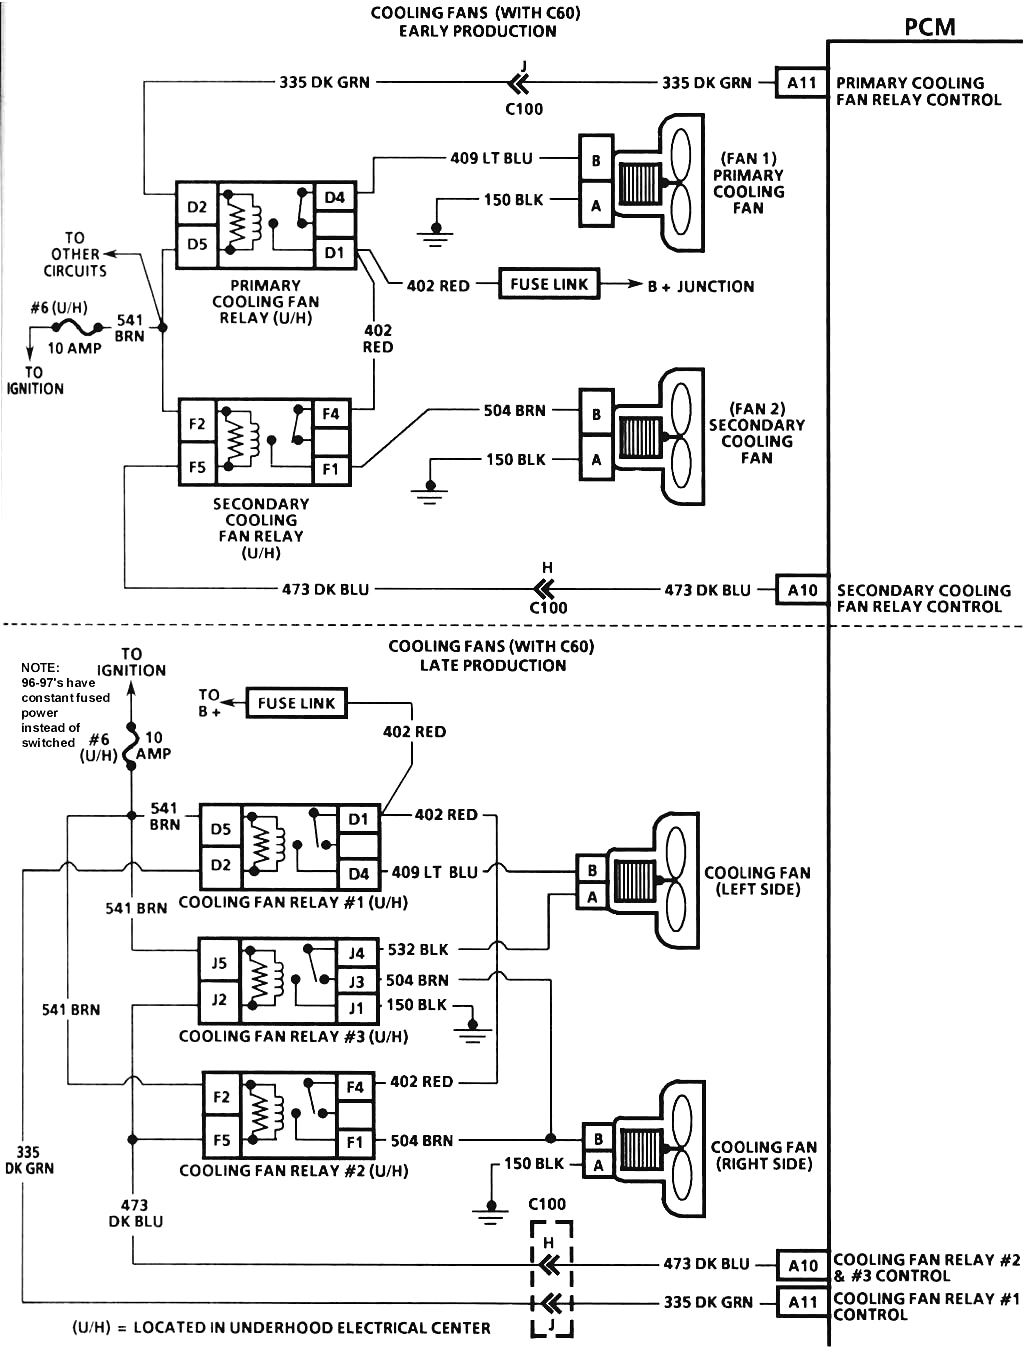 Fan Control Center Wiring Diagram Collection